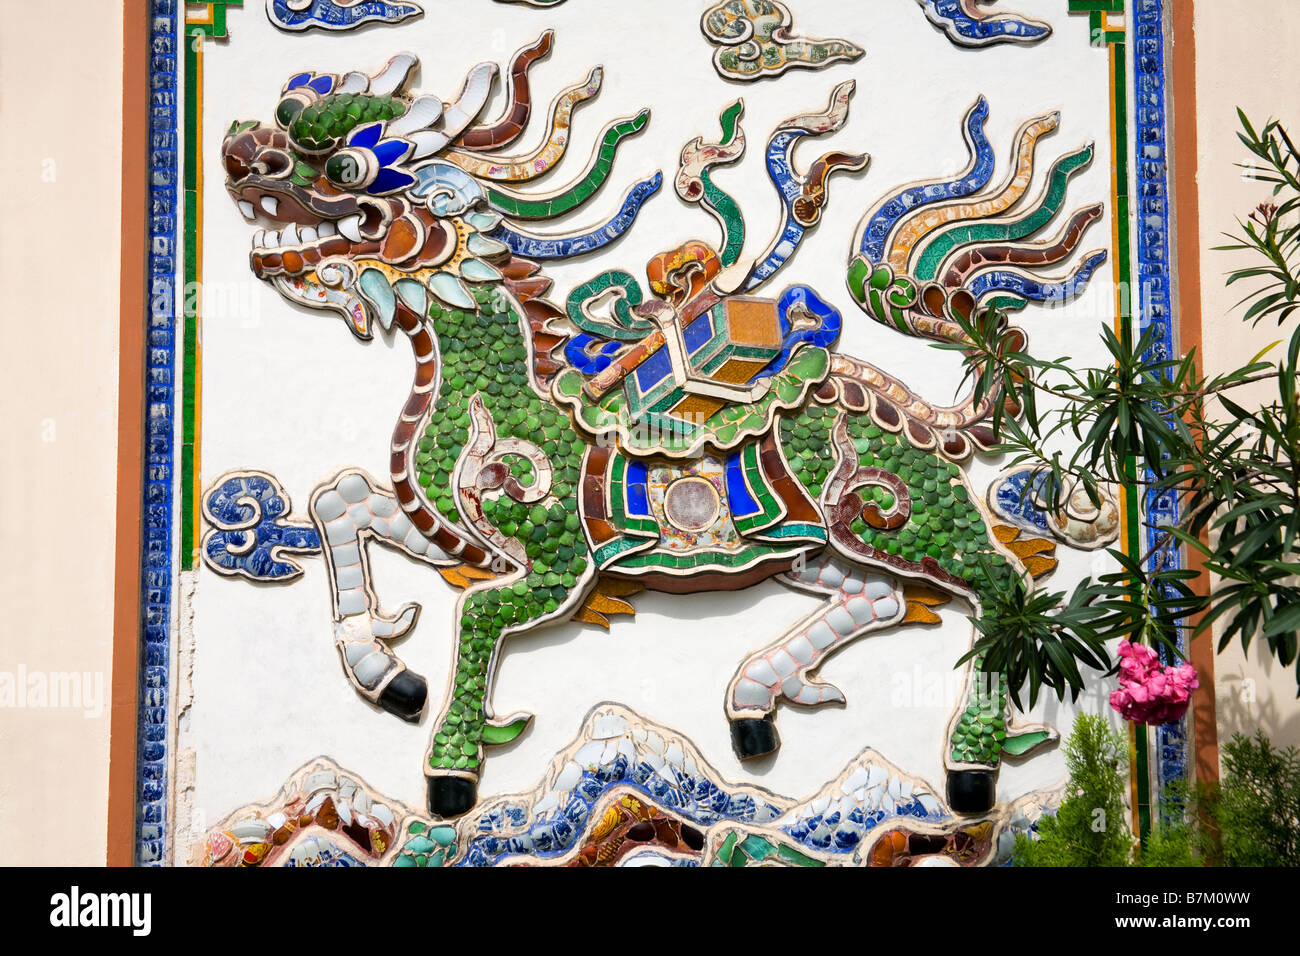 Tile Dragon at Long Son Pagoda Nha Trang City Vietnam Asia Stock Photo